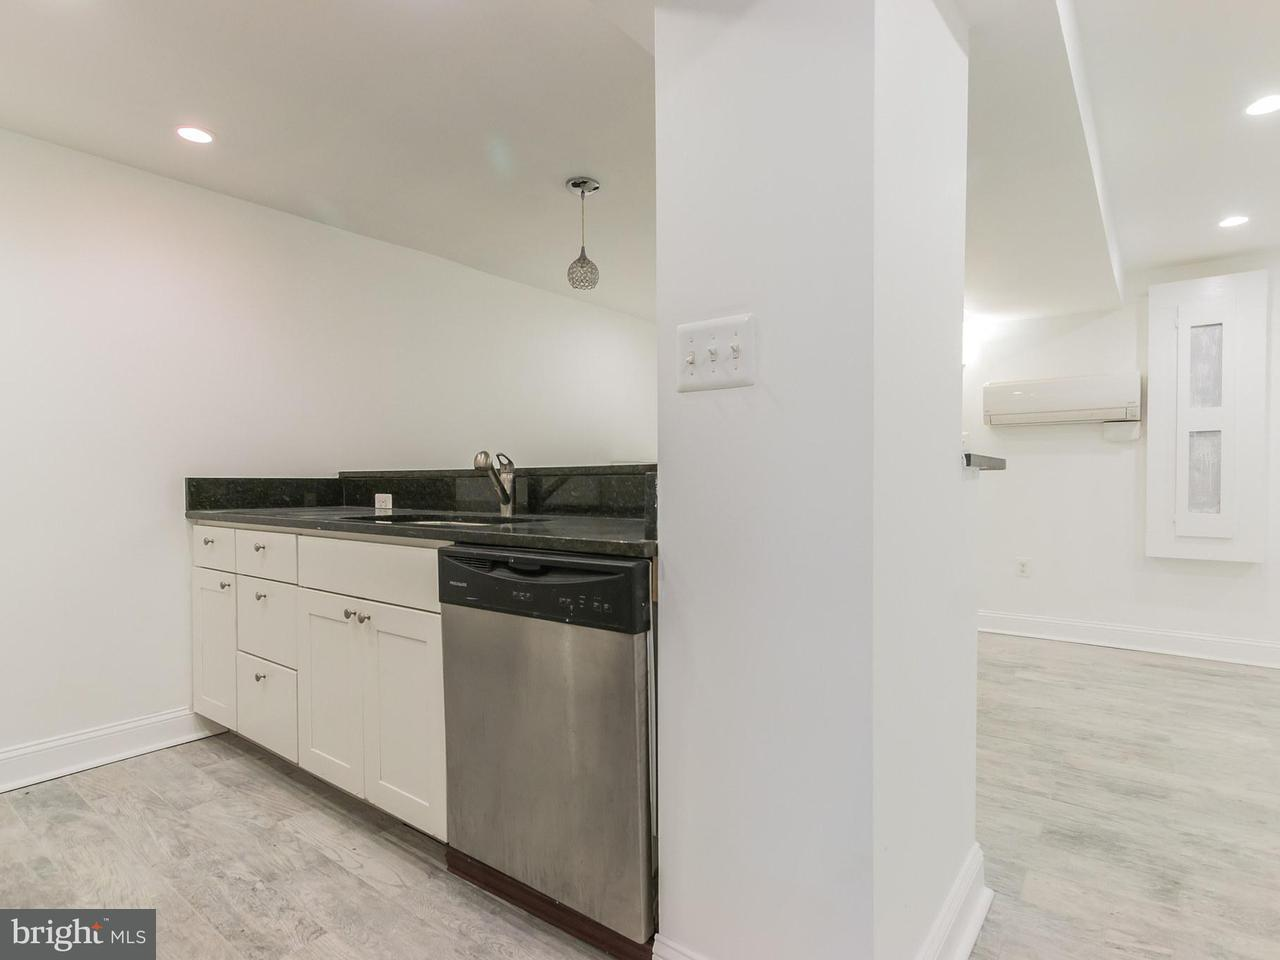 Additional photo for property listing at 1319 21st St NW #unit B  Washington, District Of Columbia 20036 United States